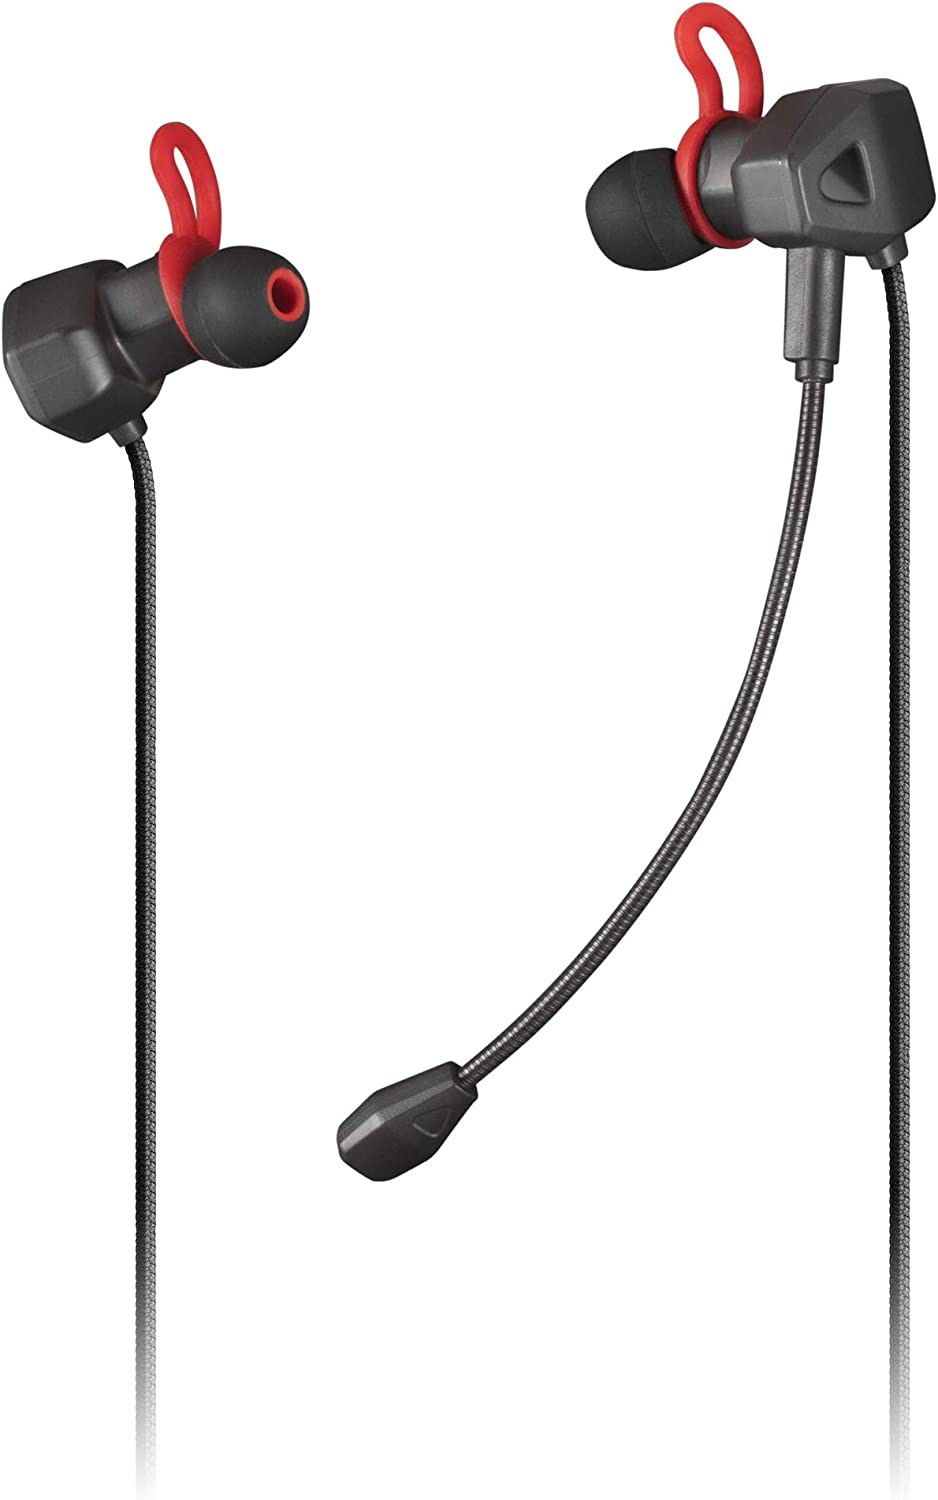 Mars Gaming MIHX Negro, Auriculares In-Ear con Micrófono, PS4/PS5/XBOX/SWITCH/PC